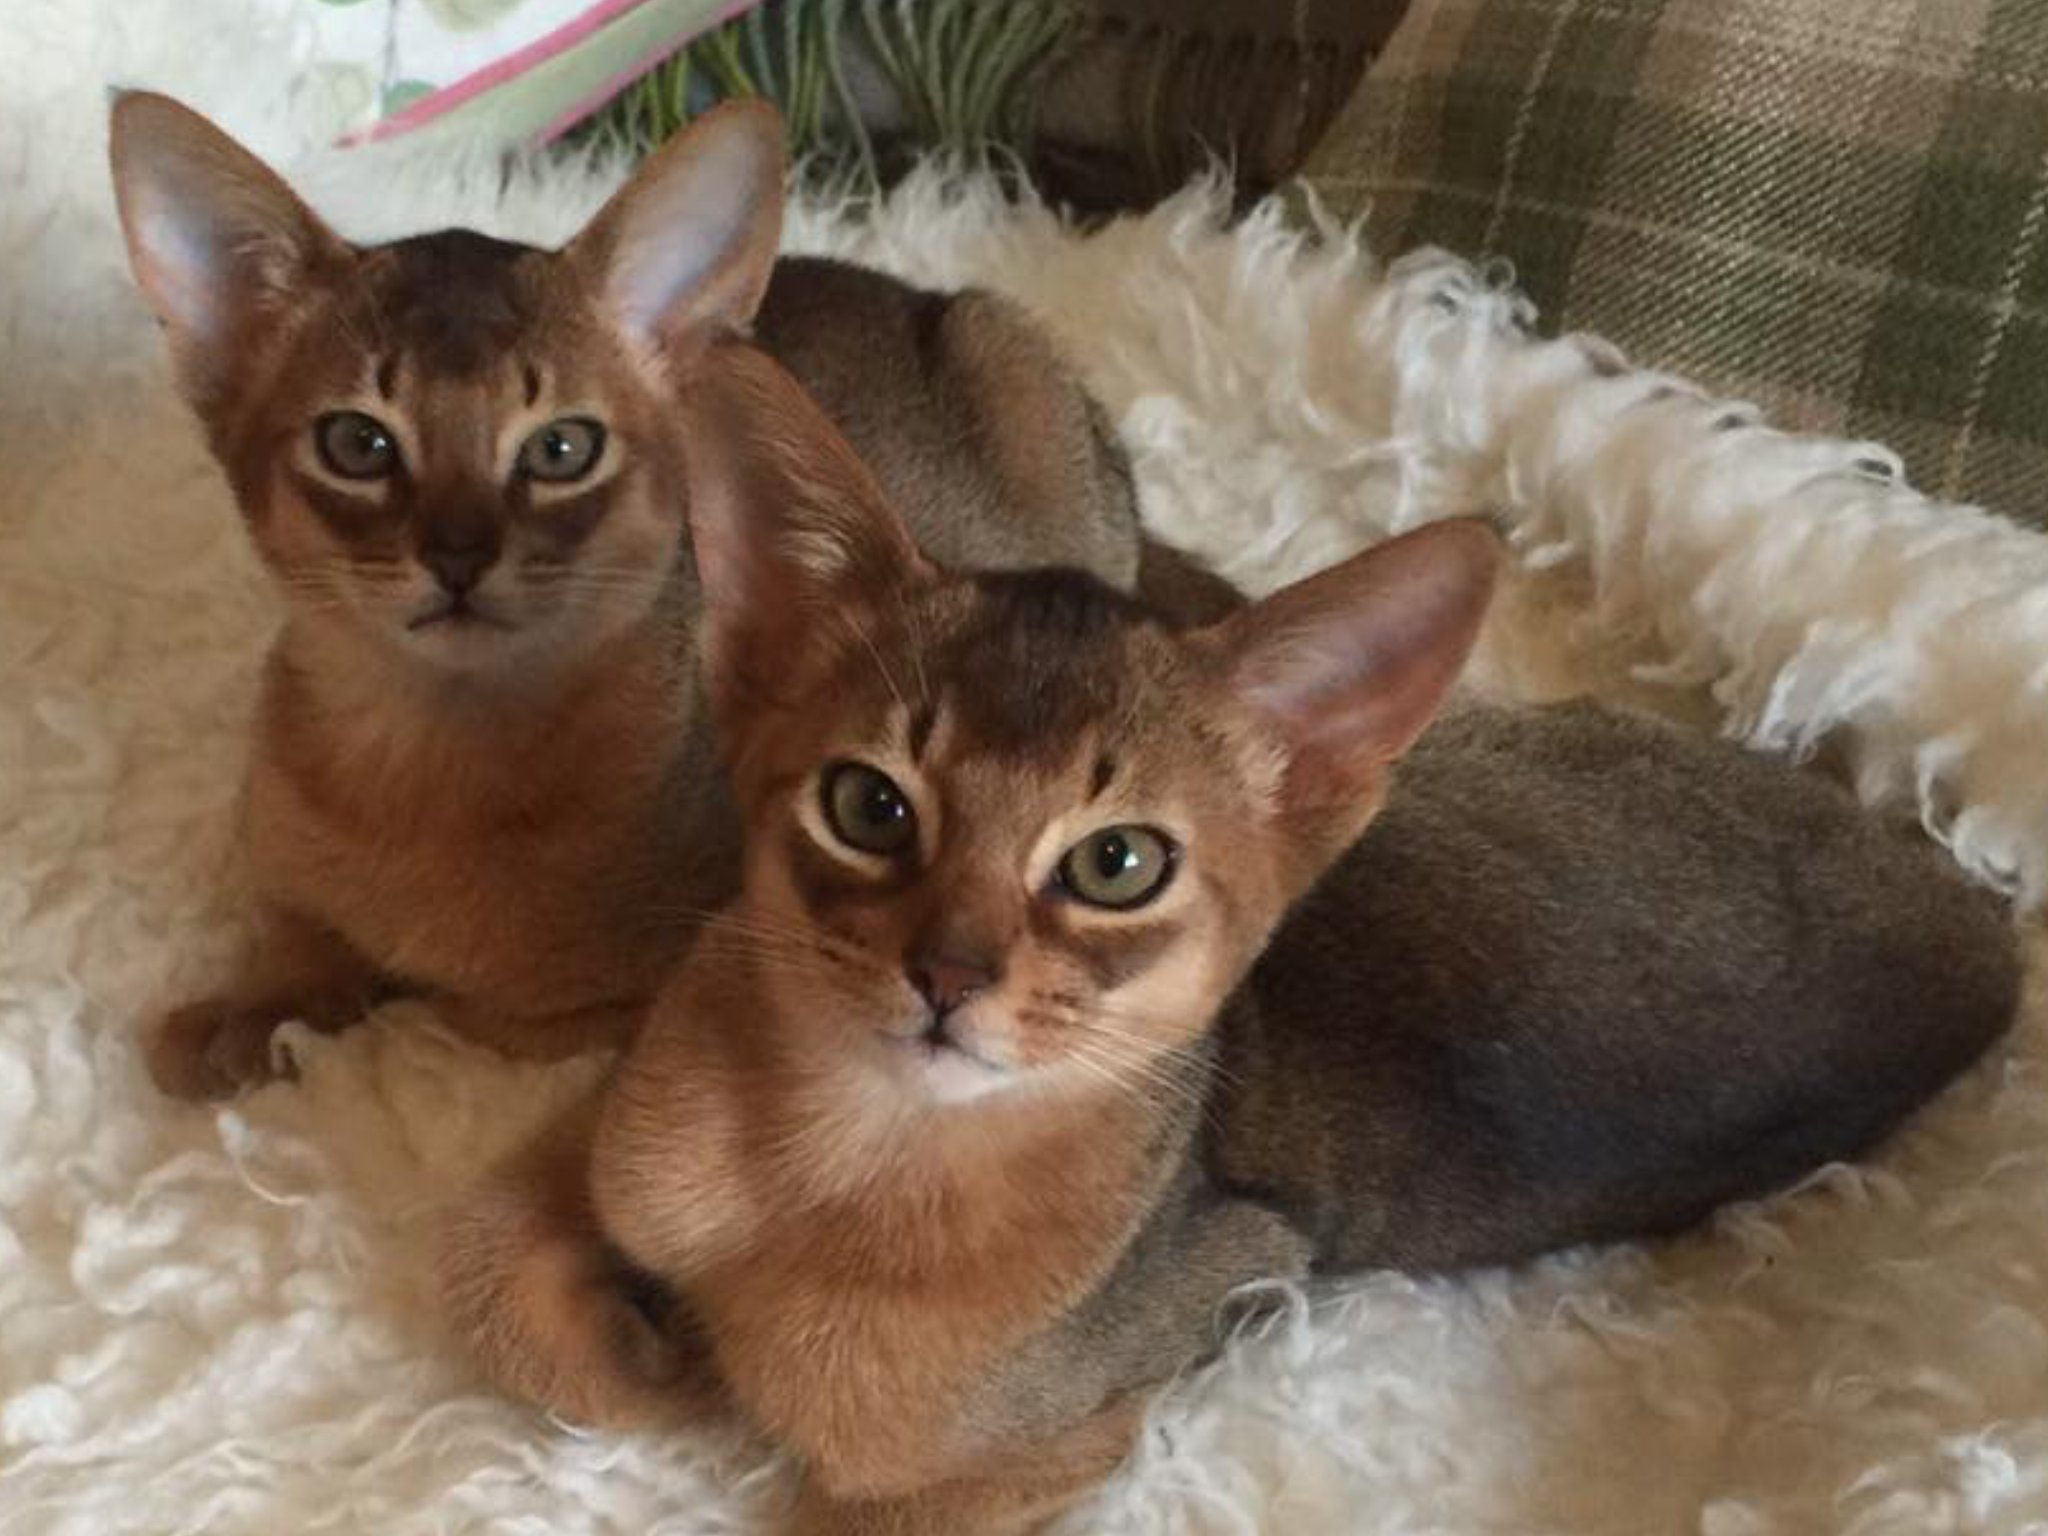 Pin by Sybil Whitworth on Abyssinian cats | Pinterest | Abyssinian ...